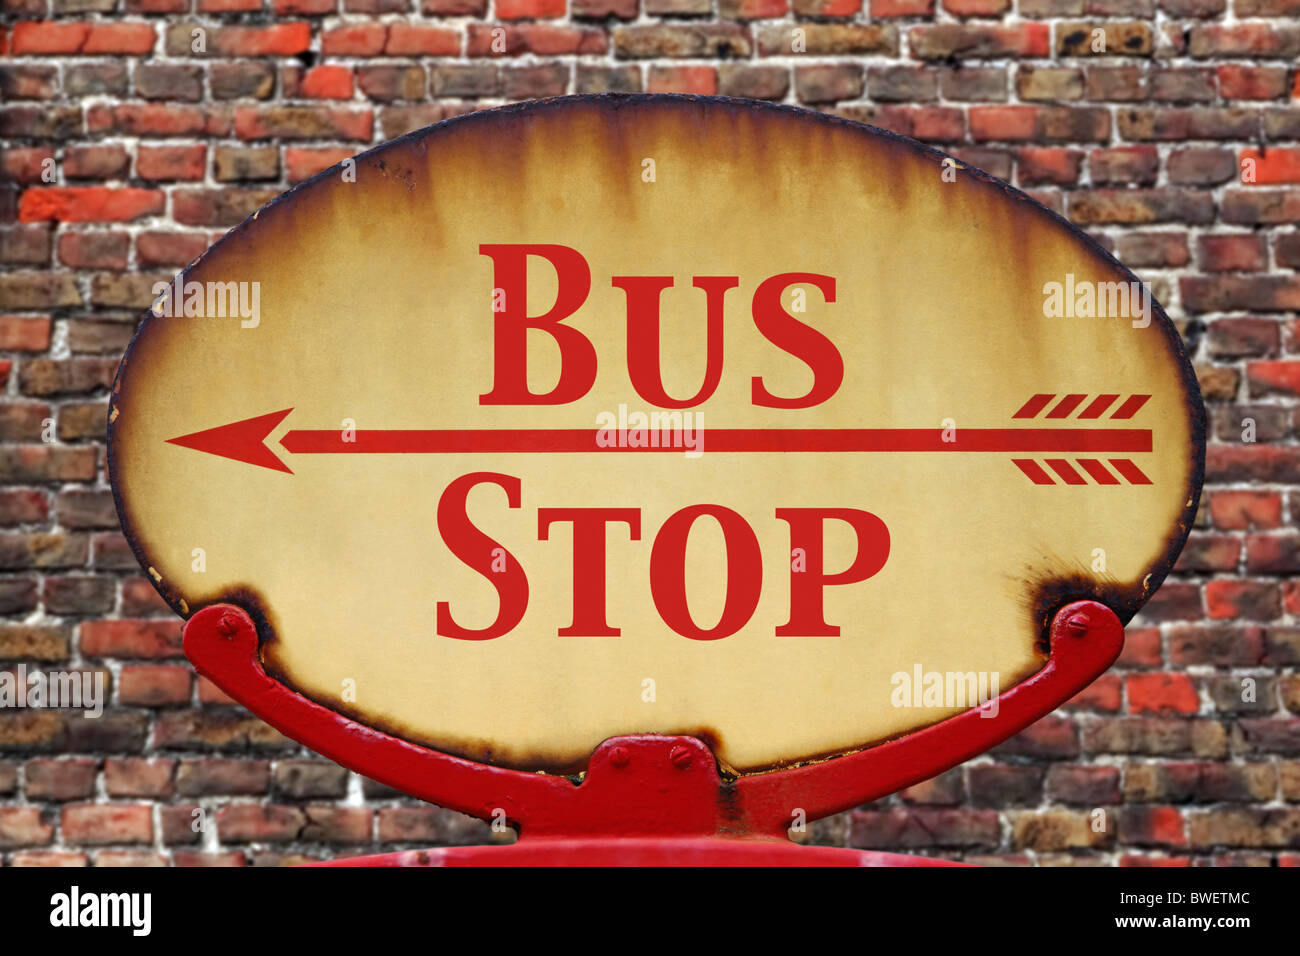 A rusty old retro arrow sign with the text Bus stop - Stock Image